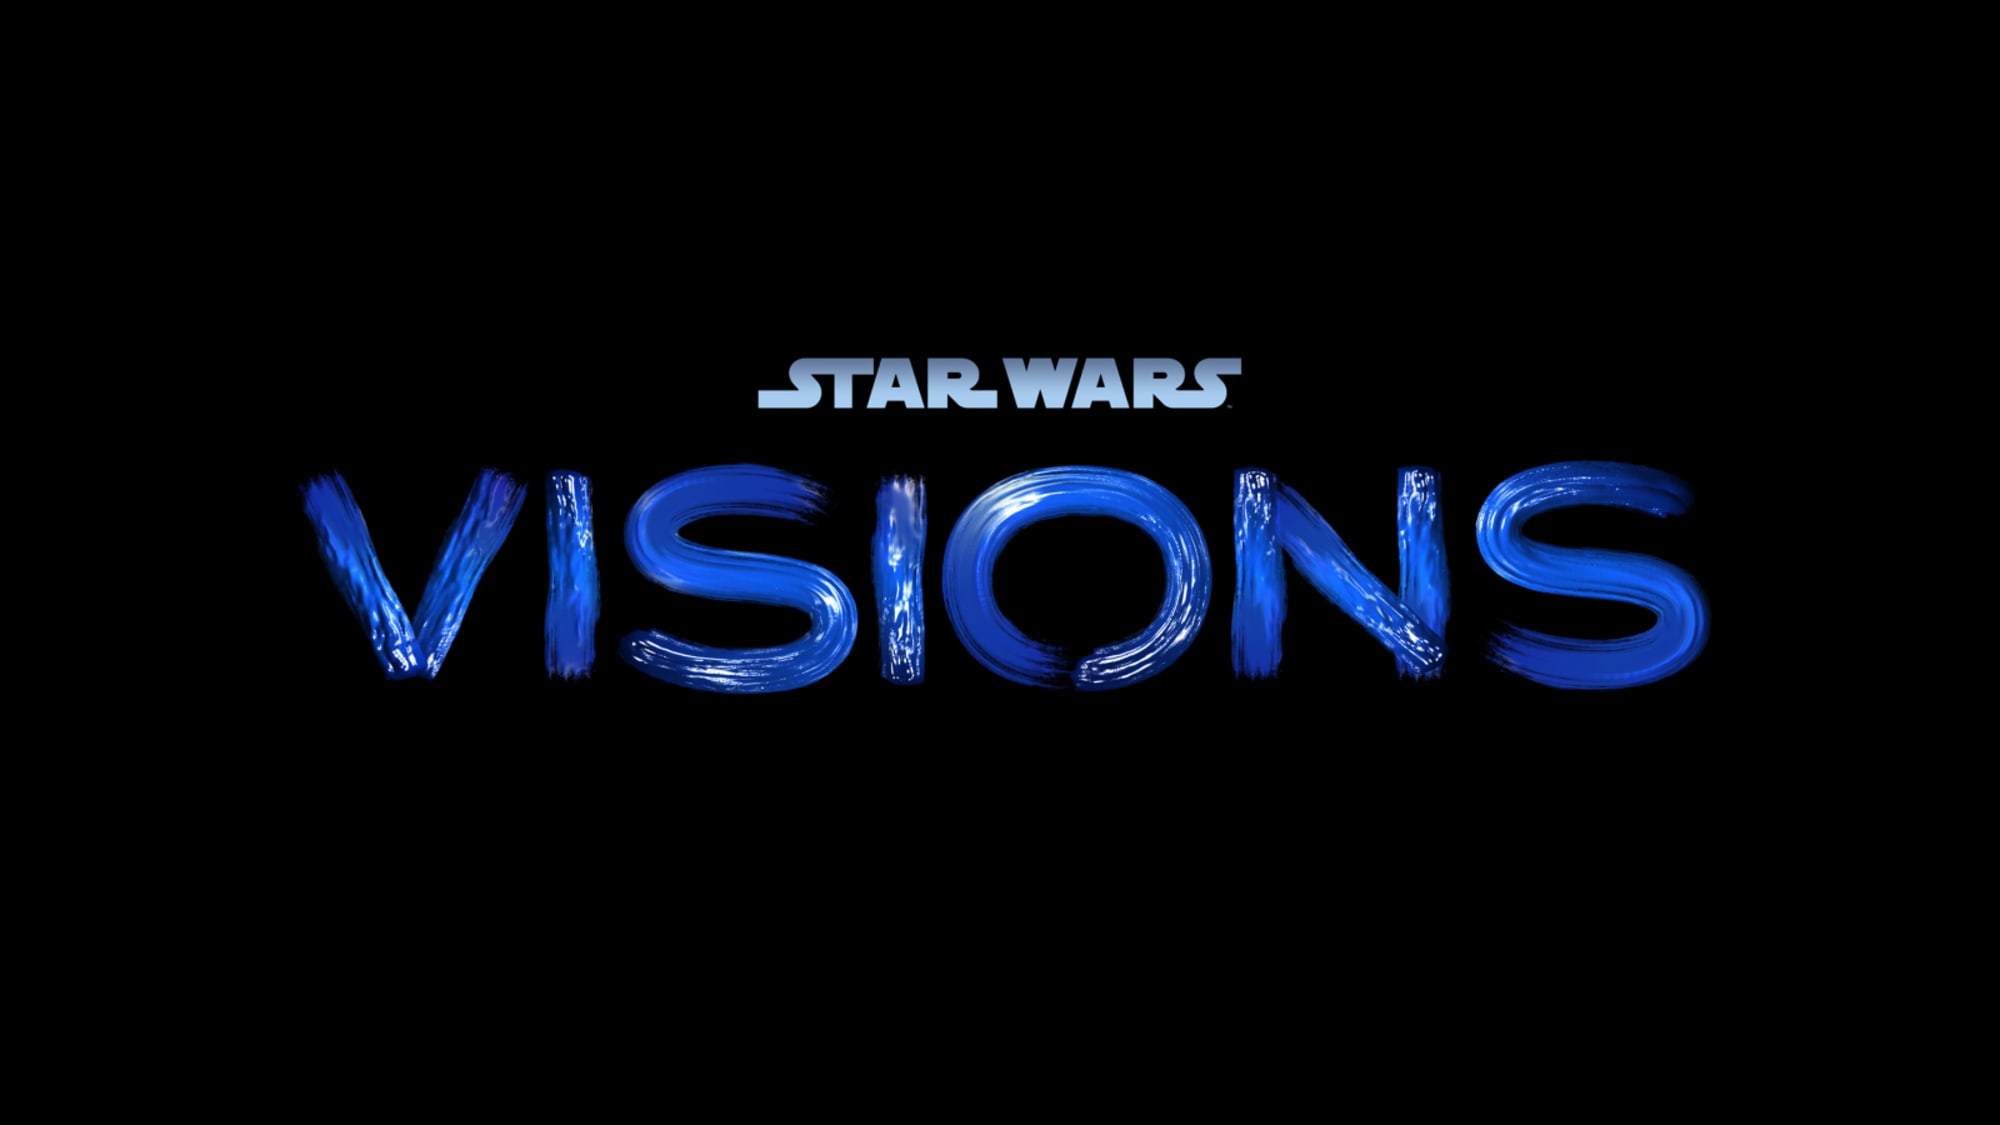 Star Wars: Visions – All 9 episodes ranked from worst to best